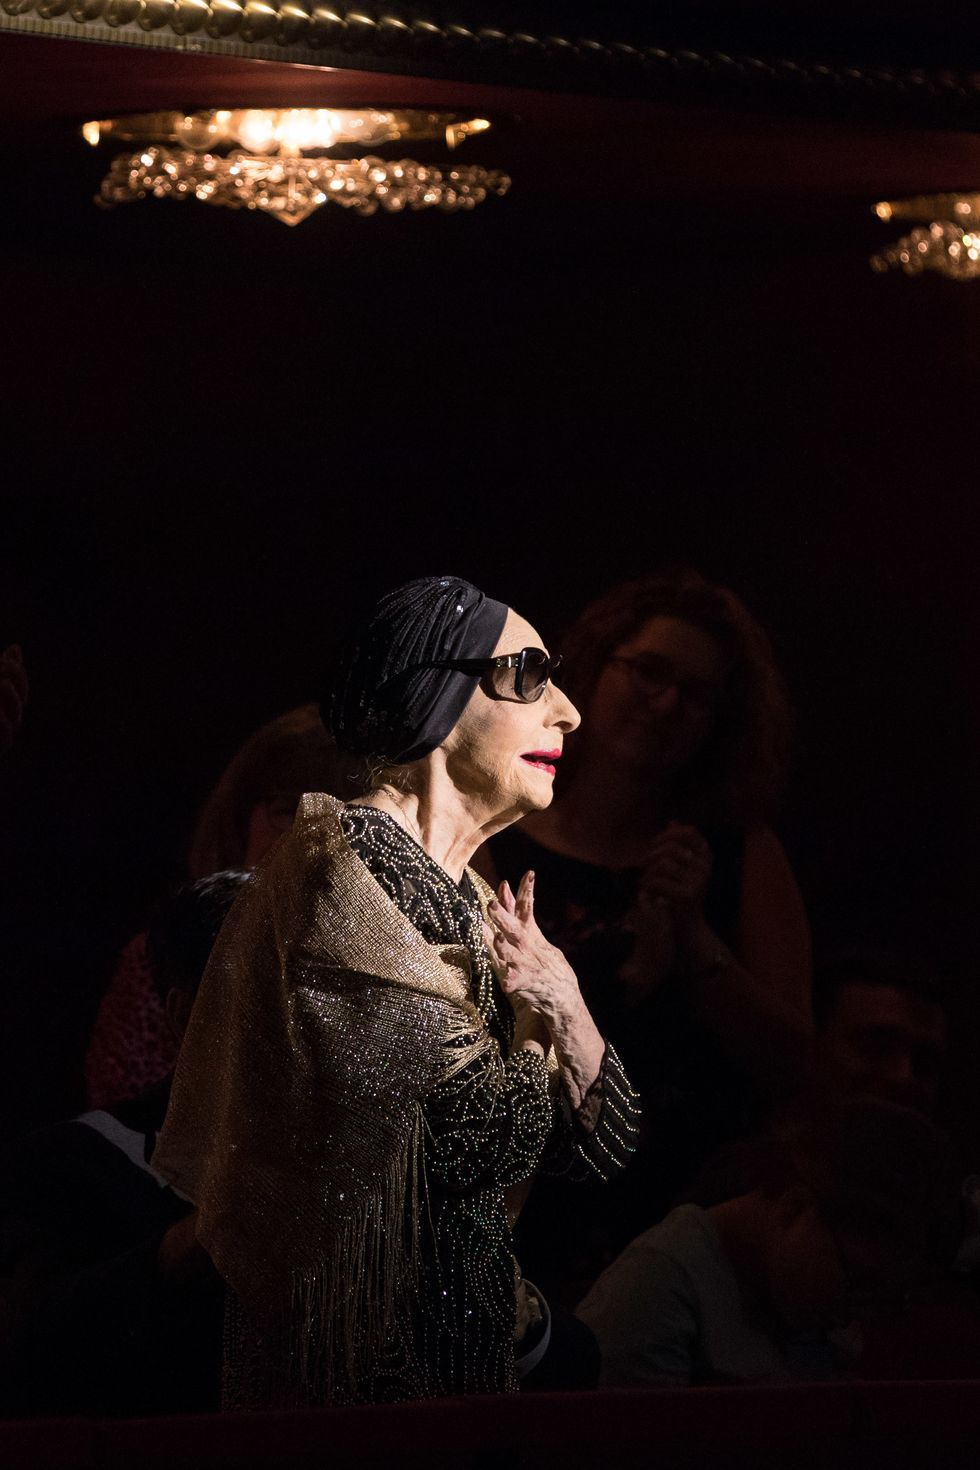 An elderly woman wearing sunglasses and a black headscarf stands in a spotlight, taking a bow.